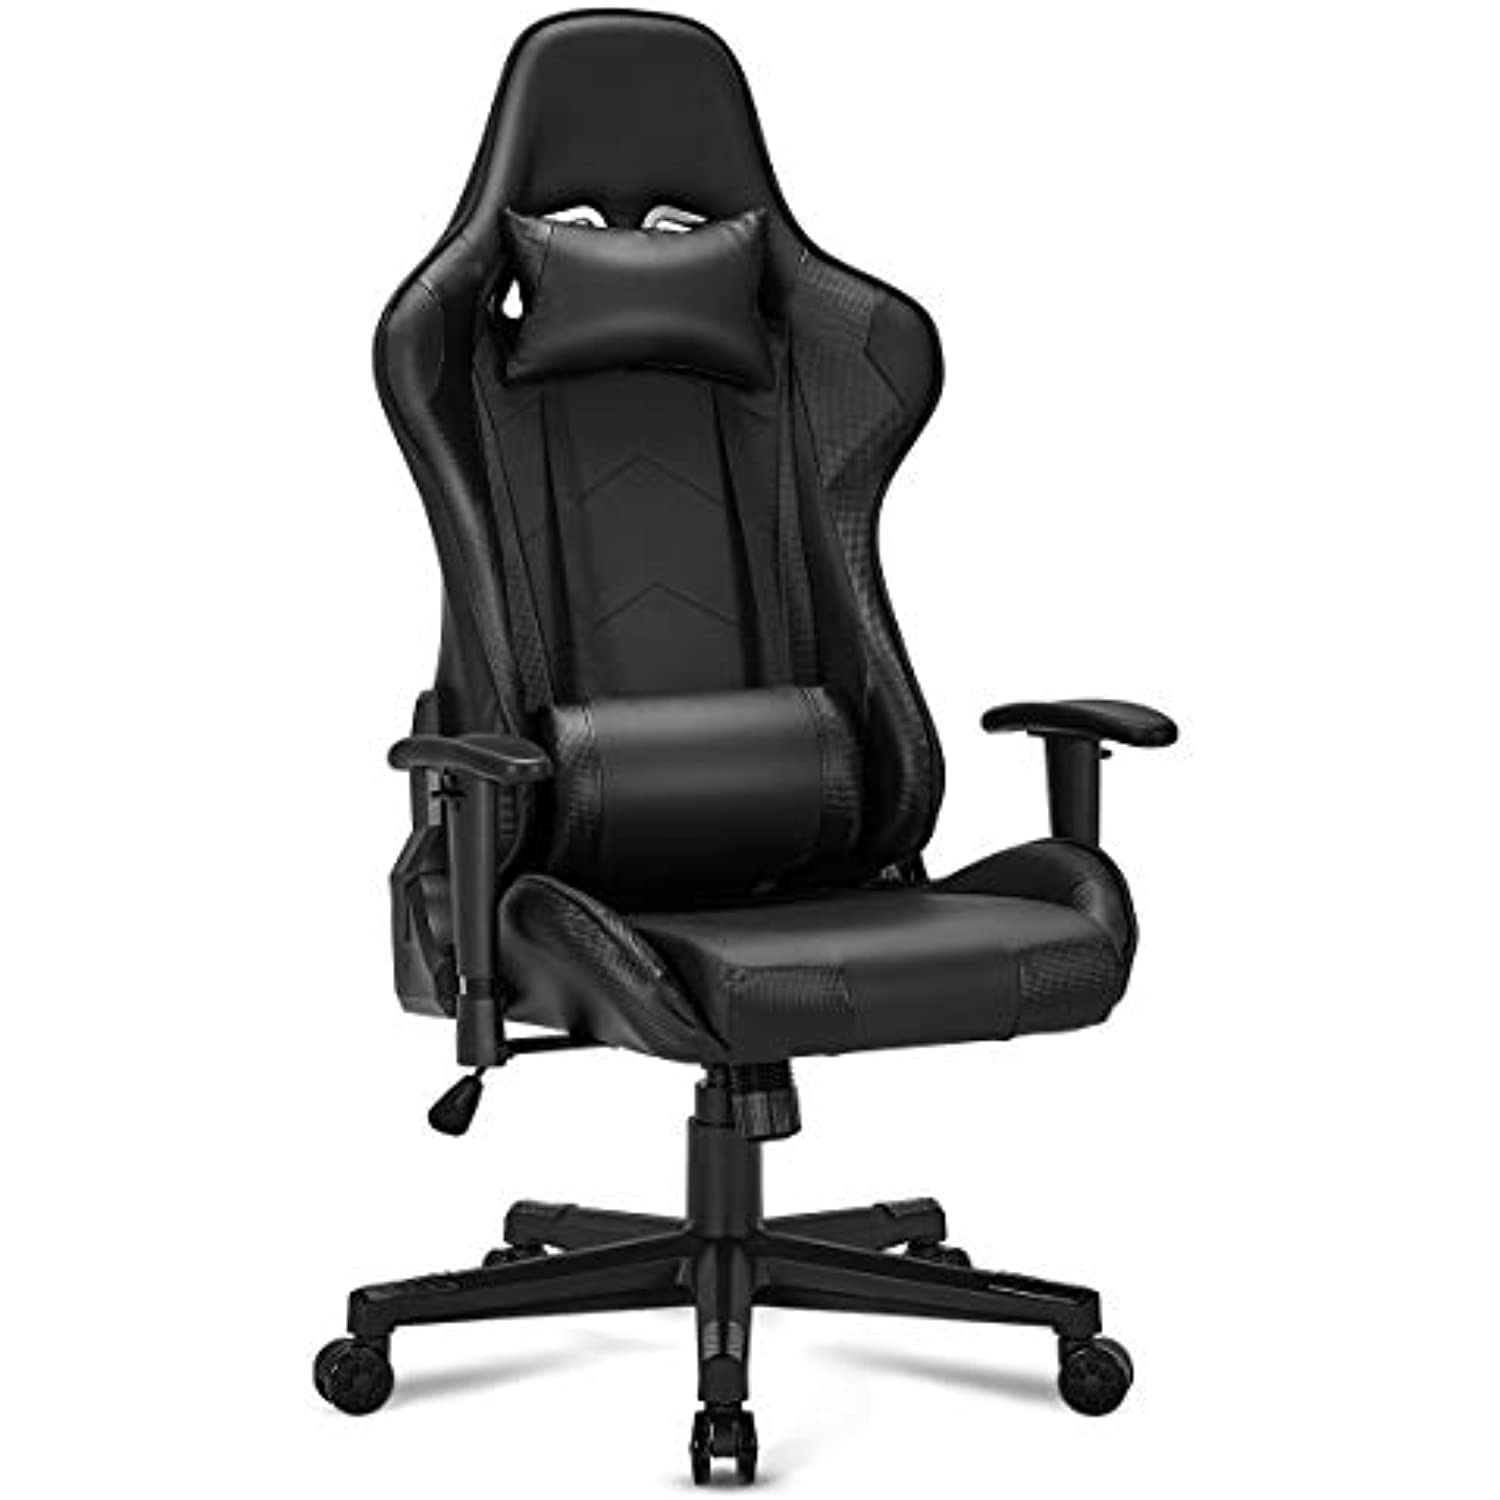 YOLENY Gaming Chair Computer Game Chair Office Chair Ergonomic High Back PC Desk Chair Height Adjustment Swivel Rocker with Headrest and Lumbar Support Lumbar Pillow,Black